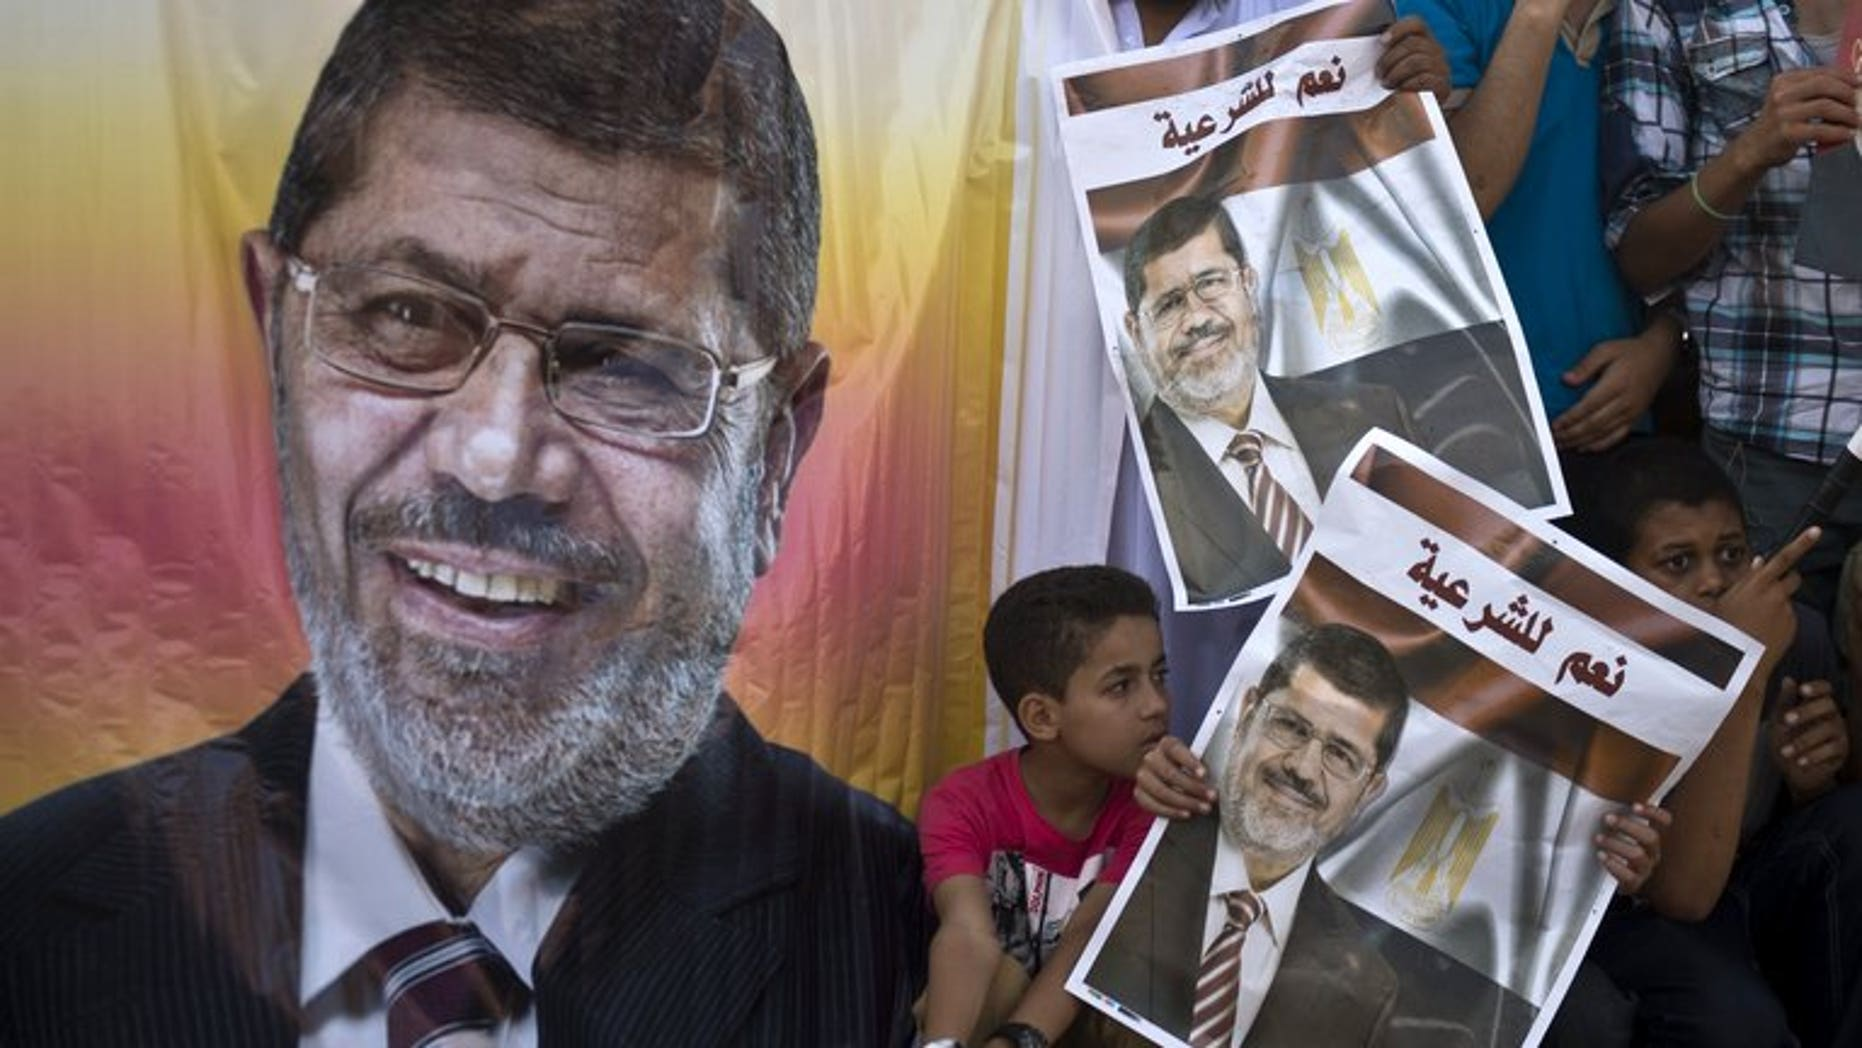 Supporters of deposed Egyptian president Mohamed Morsi watch a football match between the two main Cairo protest camps by members of the Muslim Brotherhood and supporters of the ousted Islamist leader in Cairo on August 11, 2013. Egypt's judiciary said Monday it was extending ousted president Mohamed Morsi's detention for a further 15 days pending an investigation into his collaboration with Hamas.